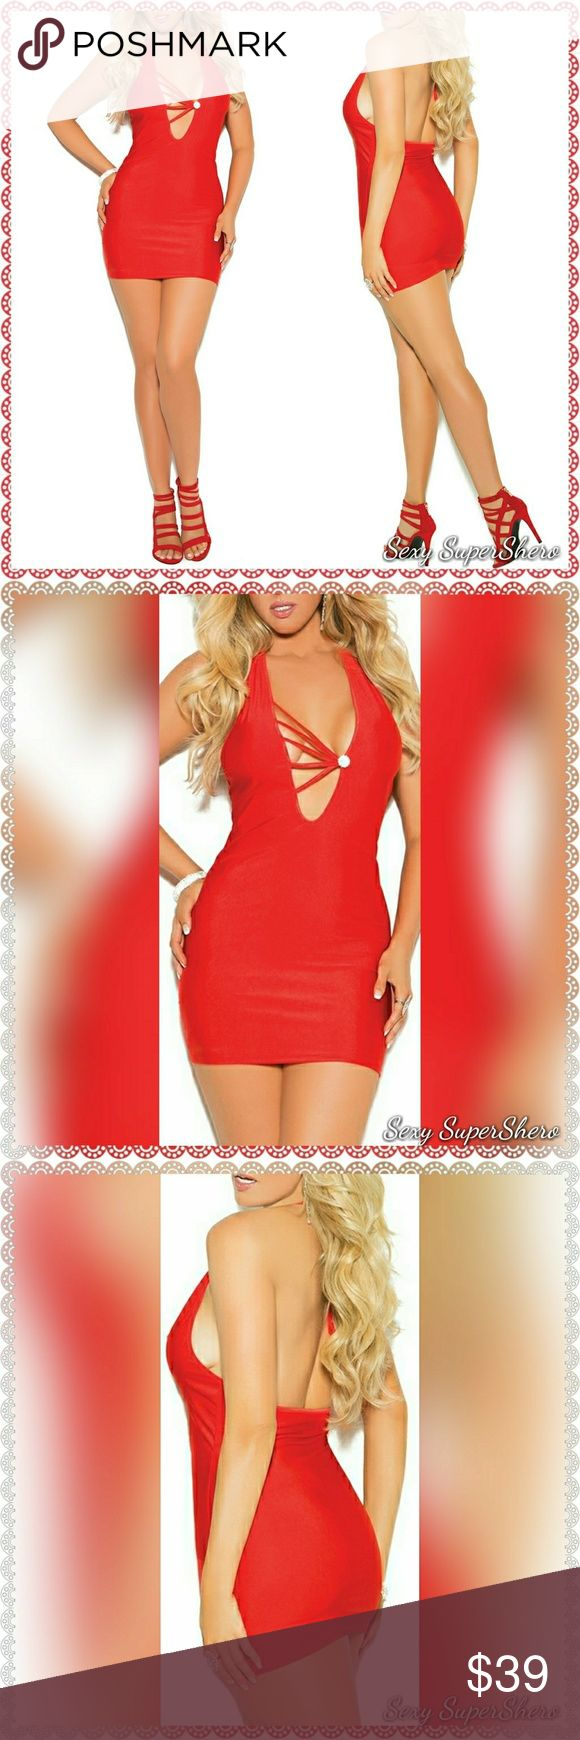 🆕 PLUS Valentines Hottie Sexy Red Mini Dress Truly turn heads in this attention-grabbing, curve-hugging stretch satin halter neck mini dress with rhinestone jewel at strappy bodice.  Size(s): 1X, 2X, 3X( see size chart pic above, also available in S,M,L, see other lisitng)  Color(s): Red  Material(s): 95% Polyester, 5% Spandex  💰 Bundle & Save 💨📦 Ships in 1-2 Business Days Sexy SuperShero Dresses Mini